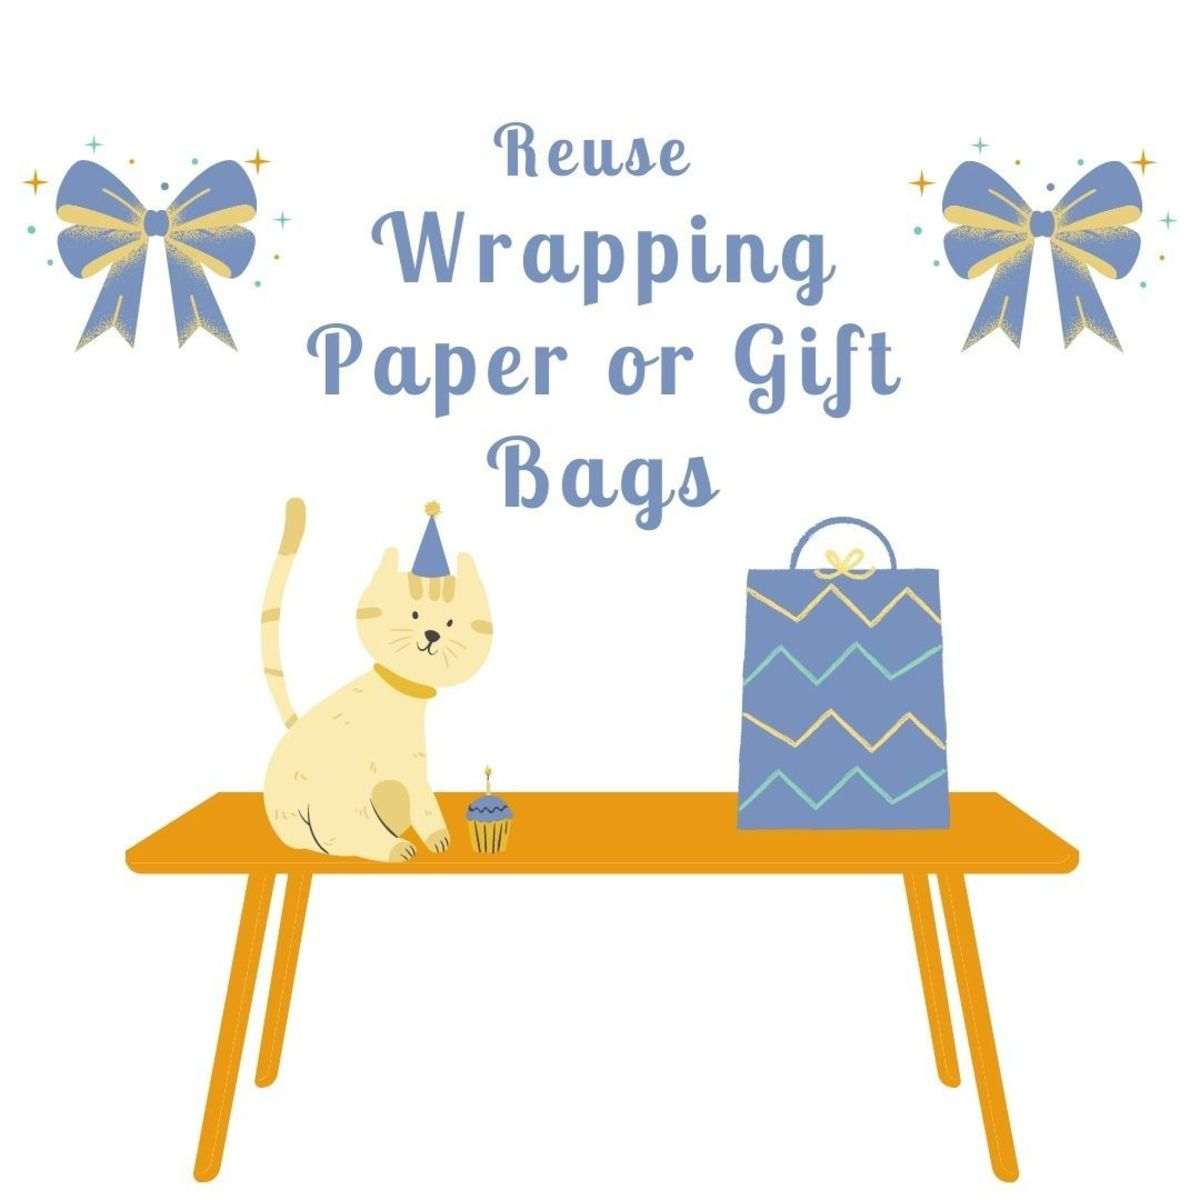 Save a beautiful gift bag or lovely wrapping paper for the next gift you're planning on giving!